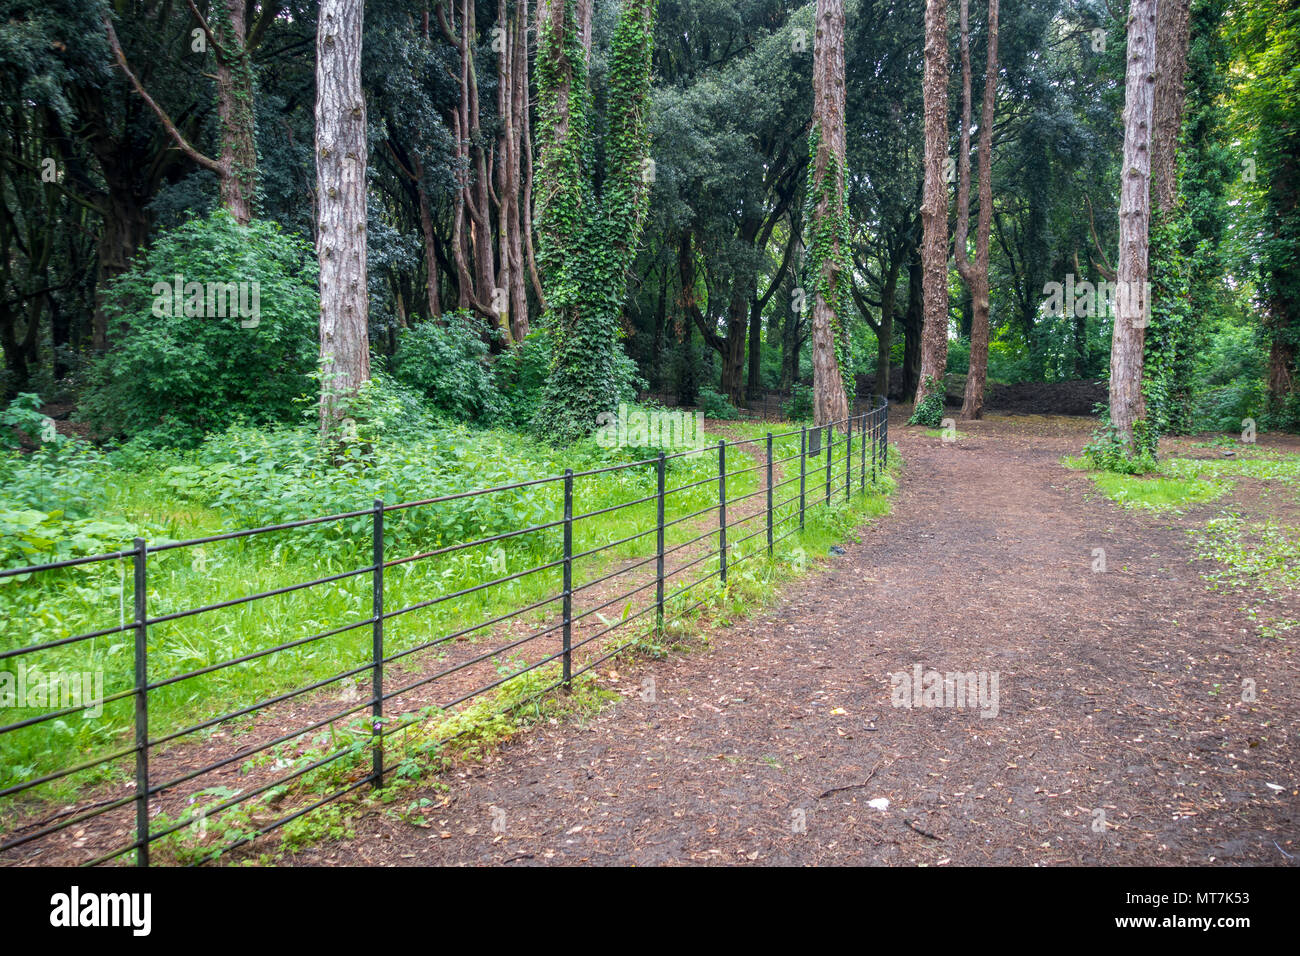 Green trees in the backgraound at park in Ireland Stock Photo